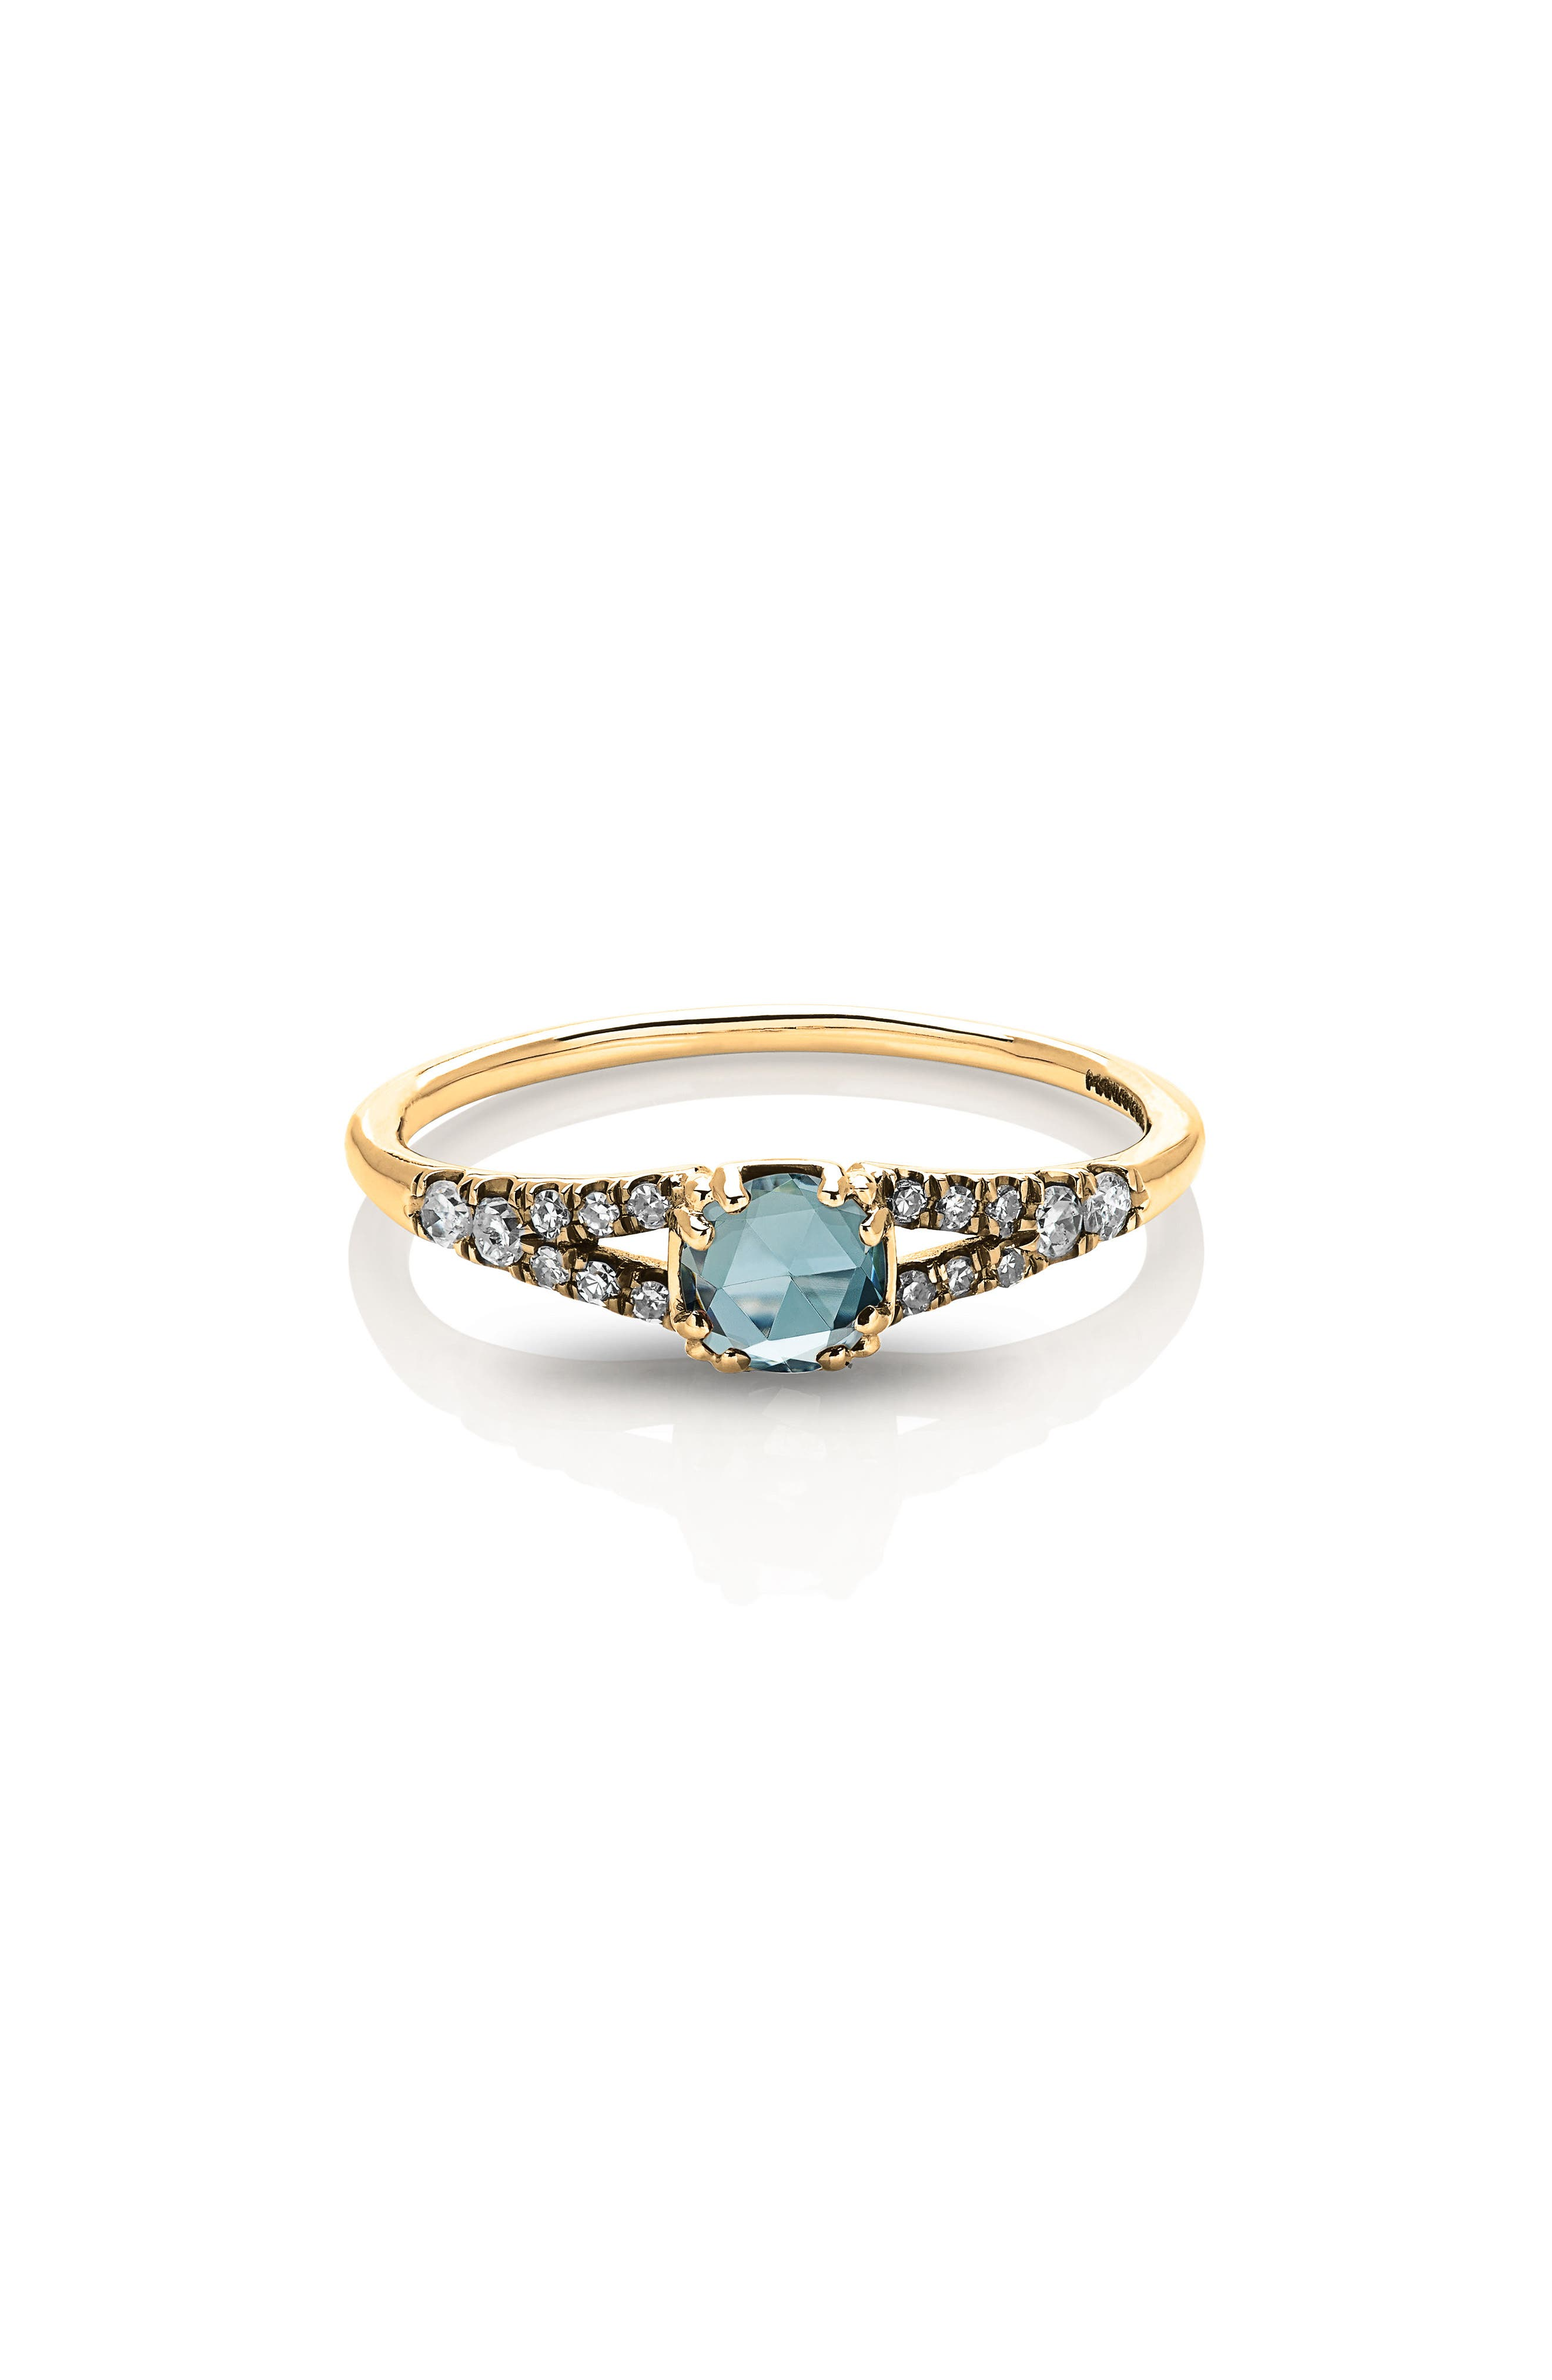 Devotion Solitaire Diamond Ring,                         Main,                         color, Yellow Gold